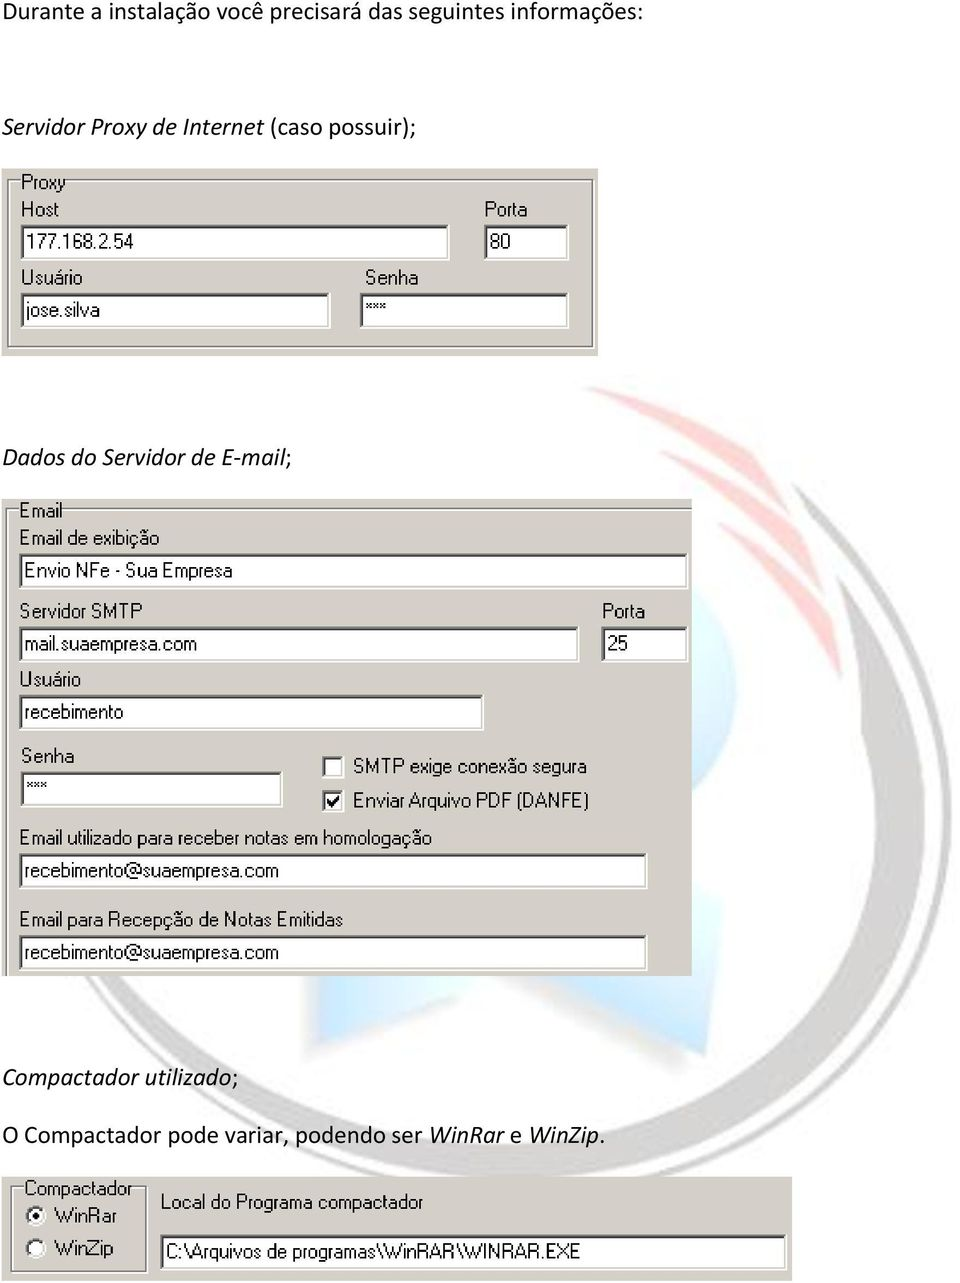 possuir); Dados do Servidor de E-mail; Compactador